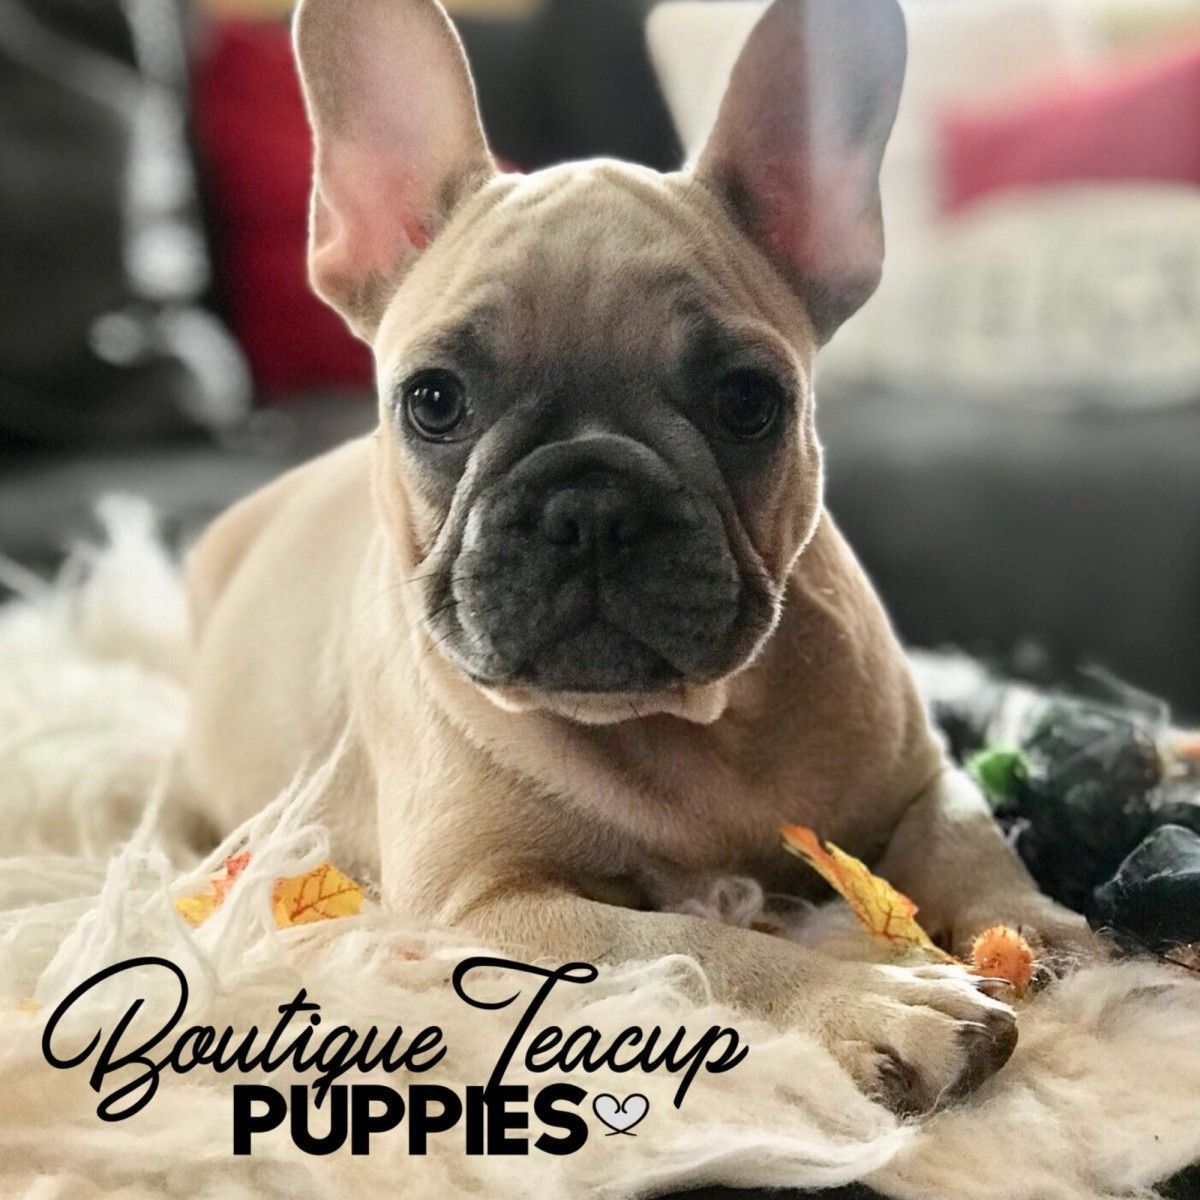 Teacup Mini French Bulldog Puppies For Sale White Baby Full Grown French Bulldog Bree French Bulldog Breeders Mini French Bulldogs Bulldog Puppies For Sale